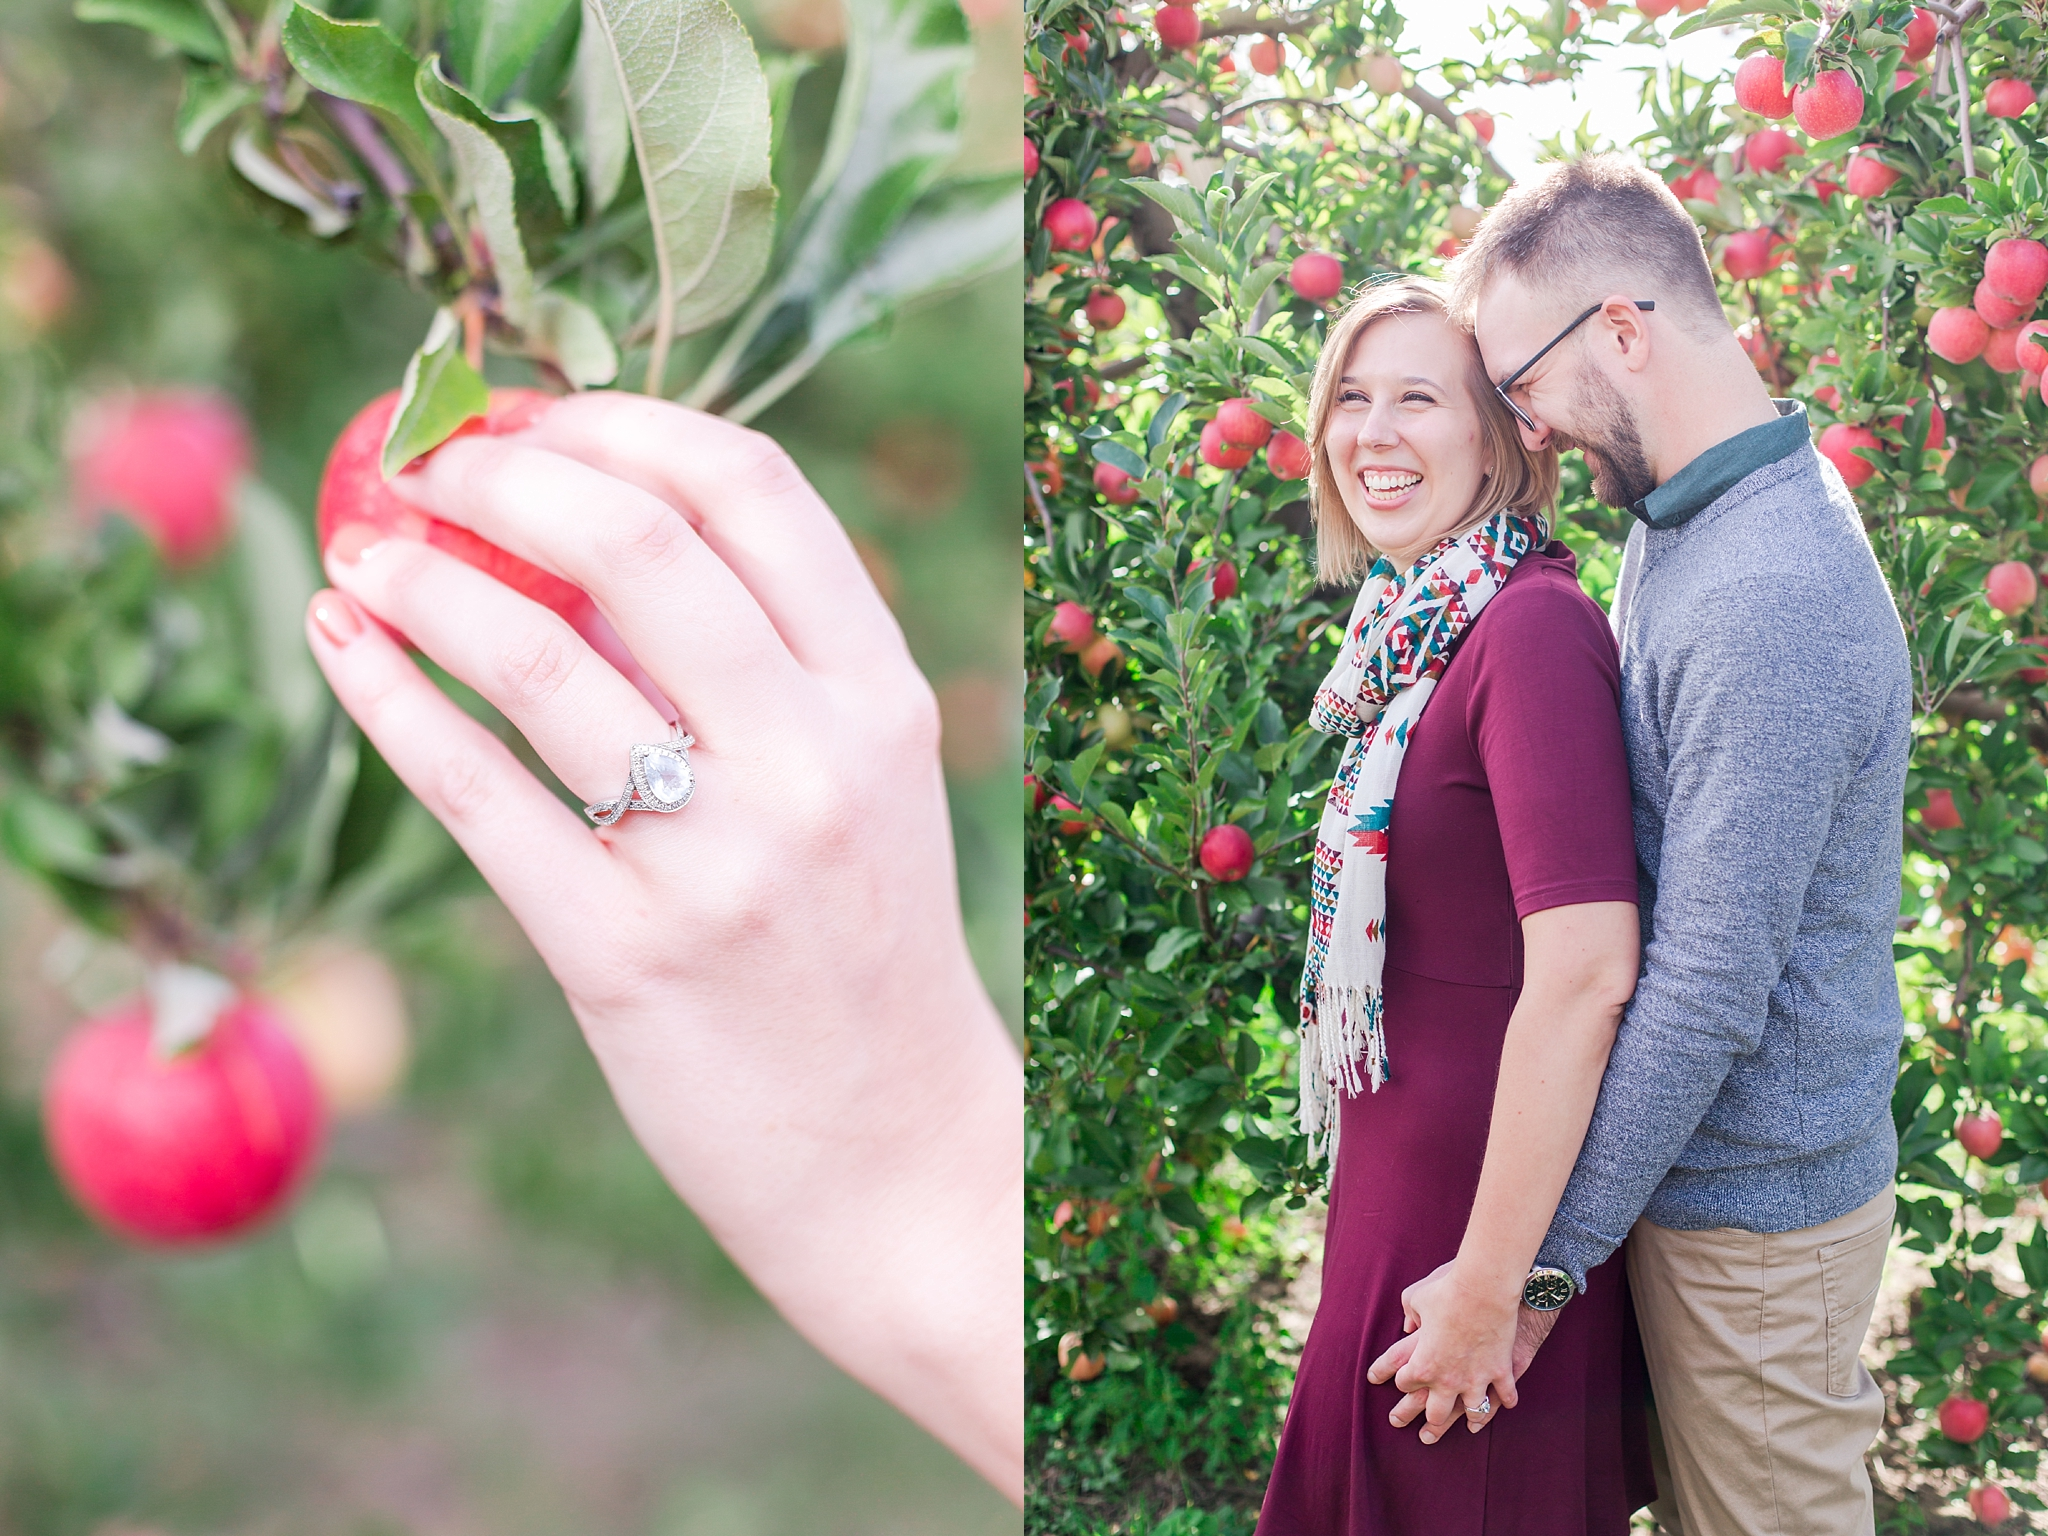 playful-fall-engagement-photos-at-hy's-cider-mill-ochard-in-bruce-township-michigan-by-courtney-carolyn-photography_0006.jpg